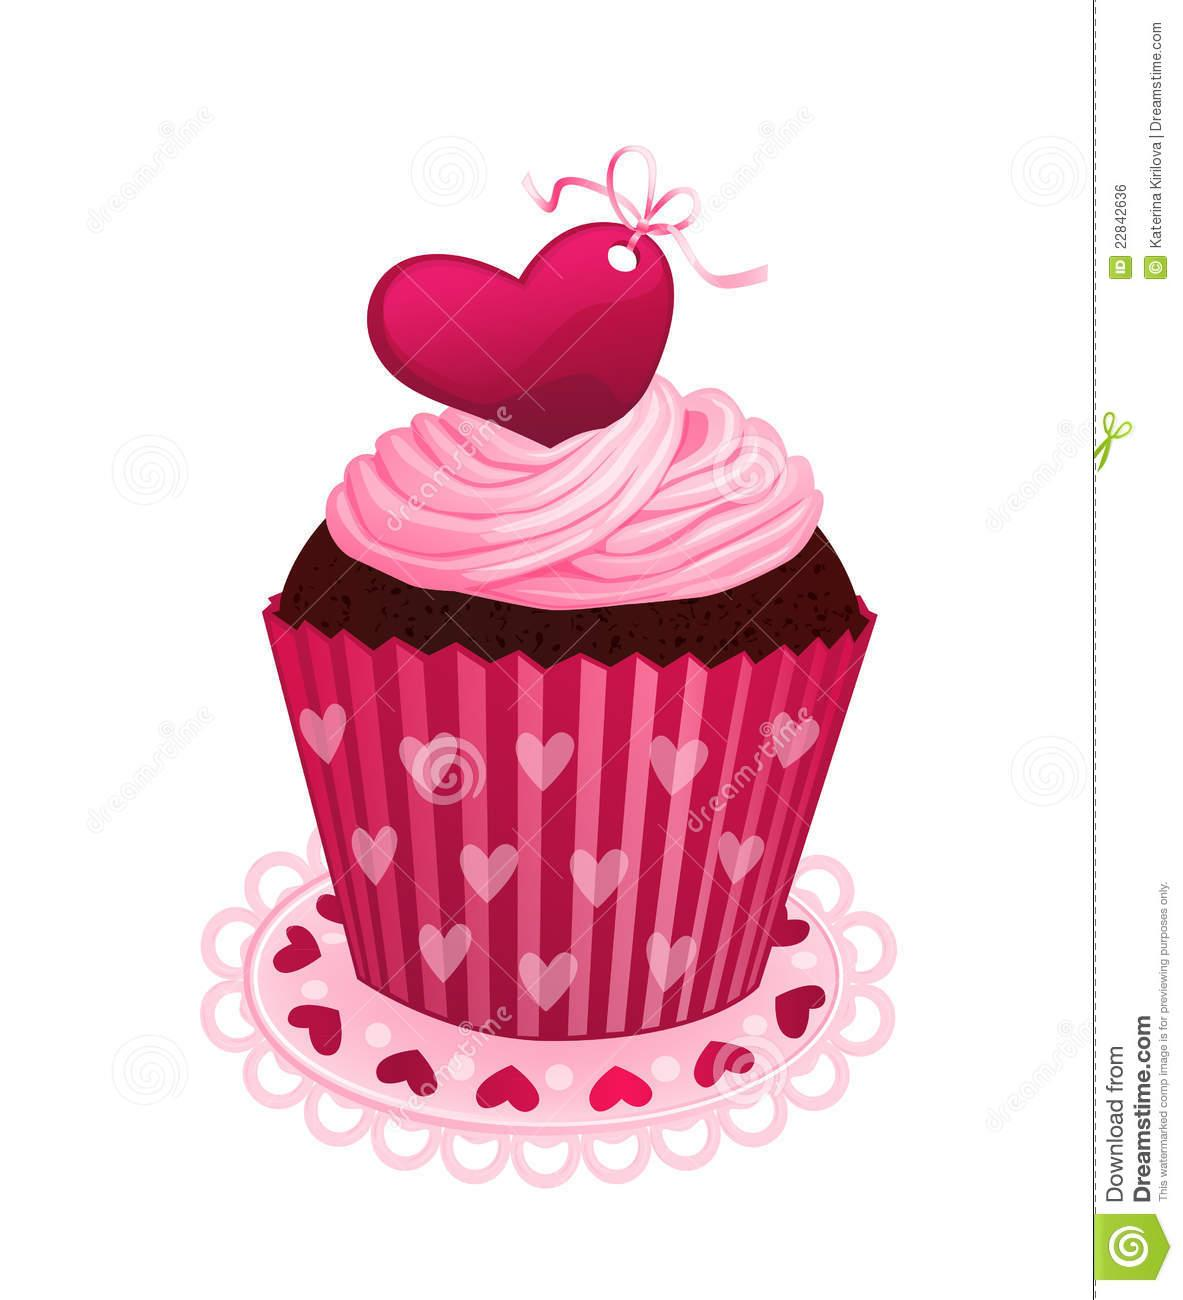 valentine day cupcake royalty free stock image image 22842636 s8EXlo clipart